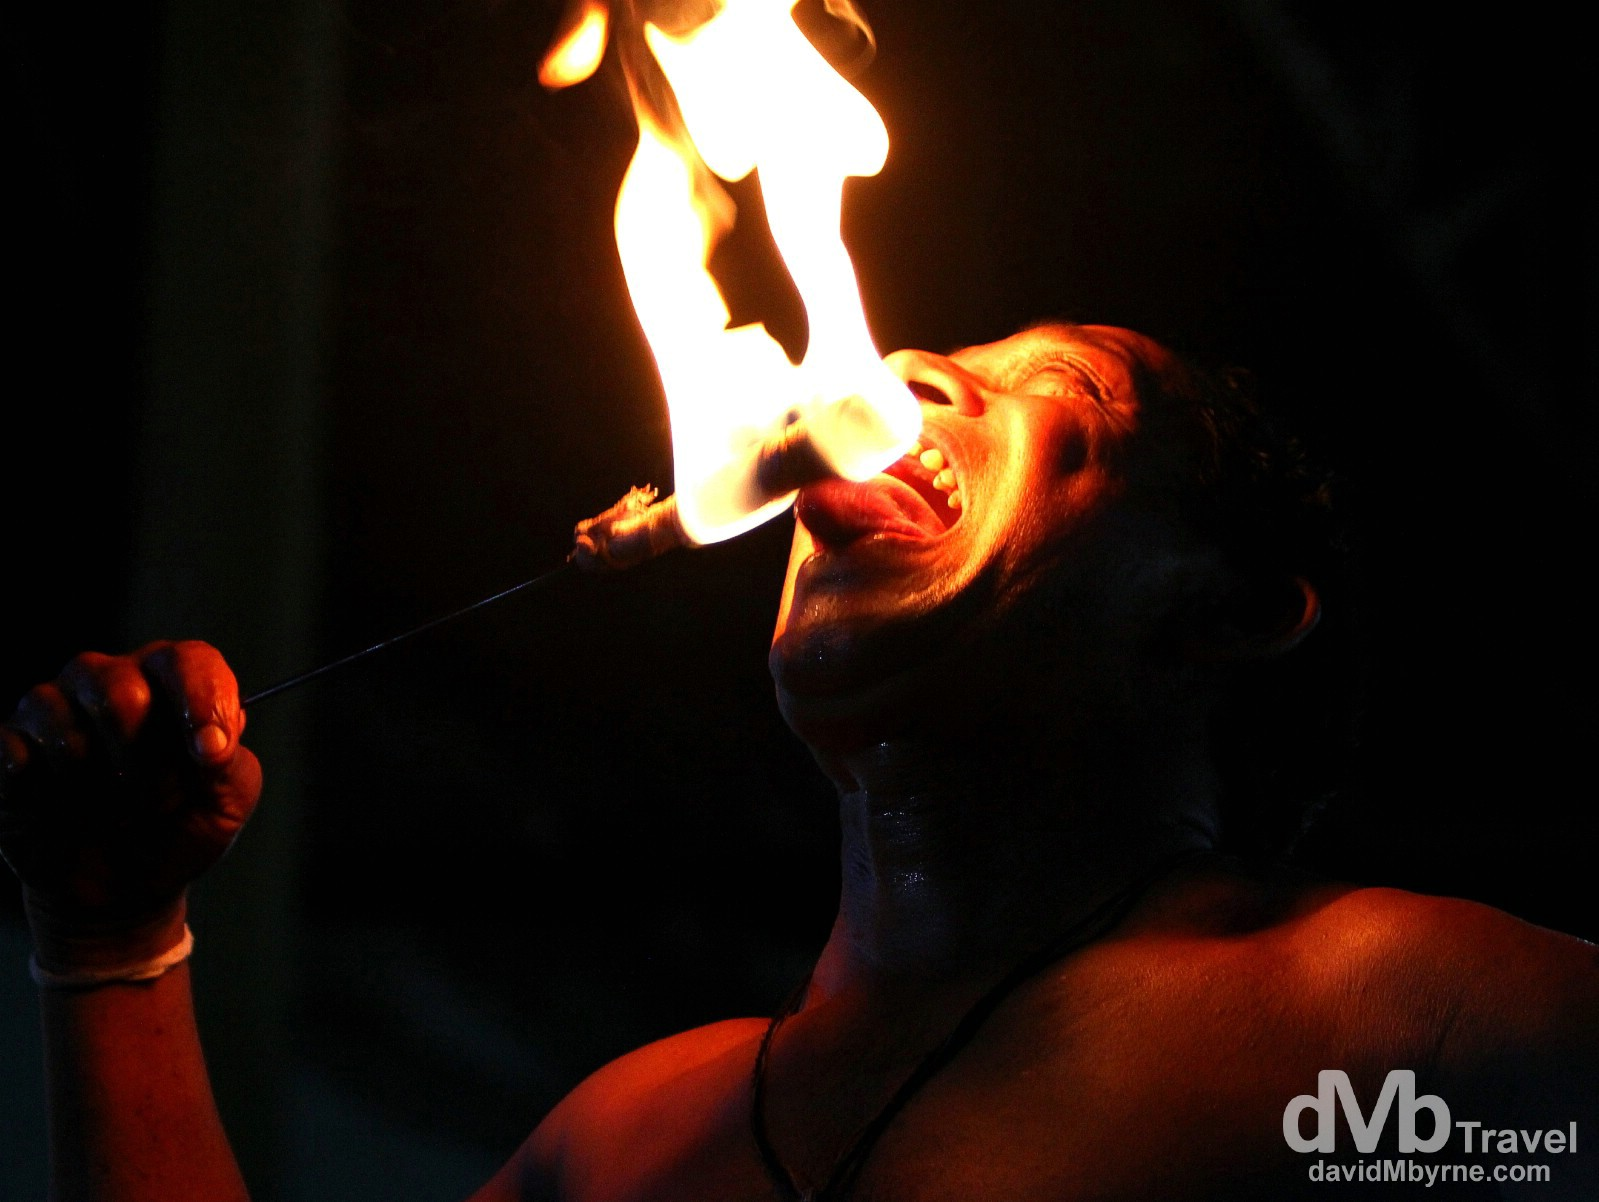 Eating fire as part of a Cultural Performance at the Kandyan Art Association & Cultural Centre, Kandy, Sri Lanka. September 9th 2012.